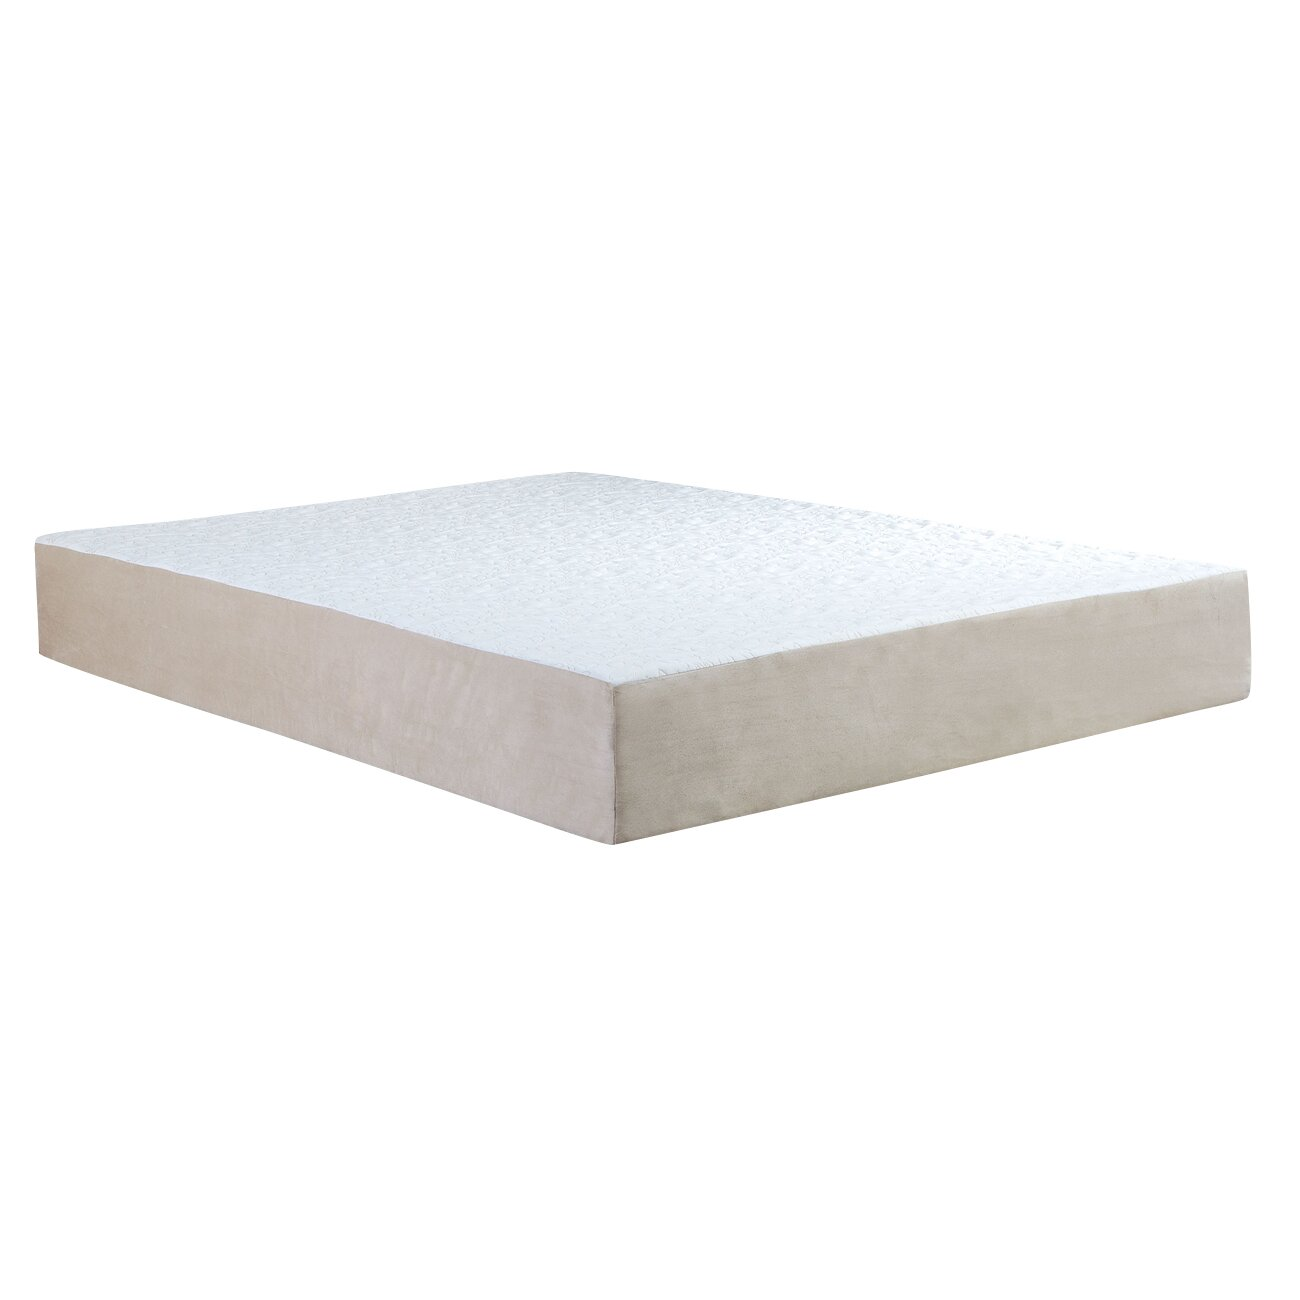 Classic brands 10 memory foam mattress reviews Memory foam king mattress